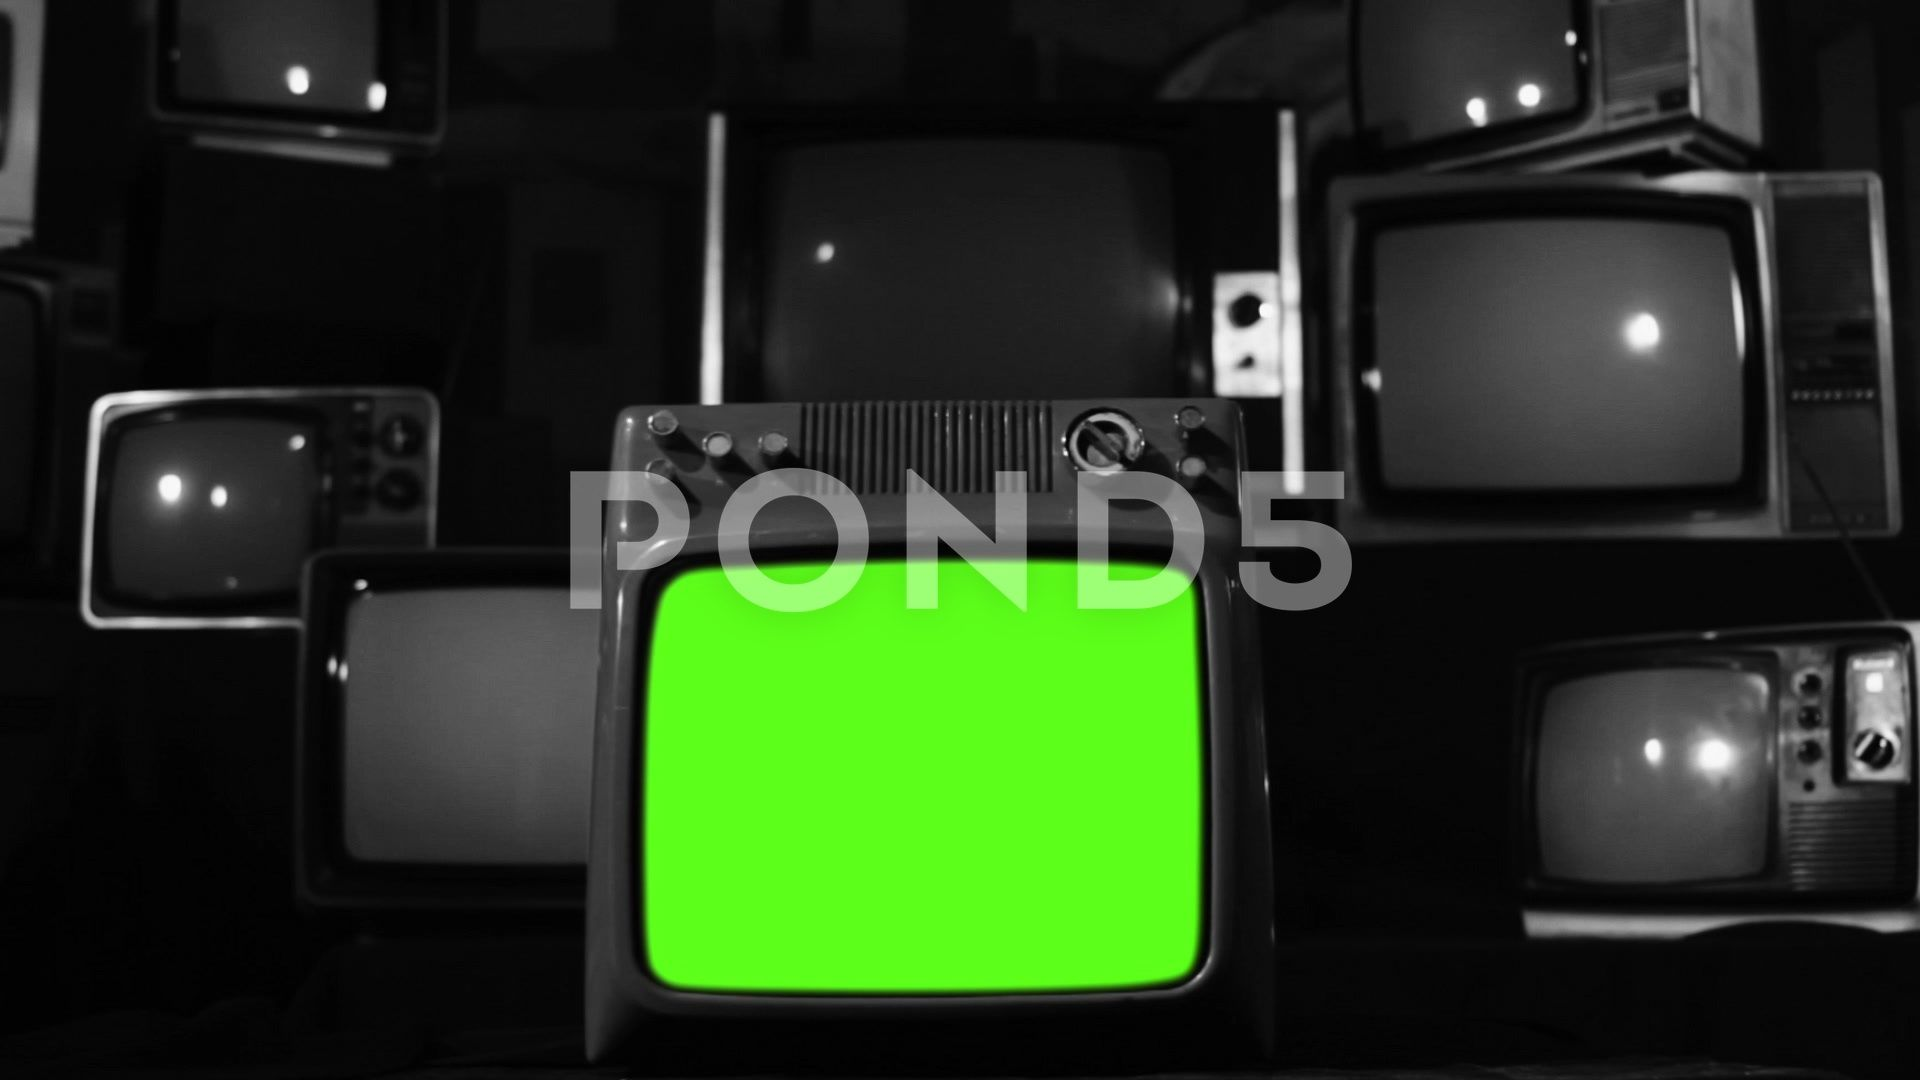 Vintage Tv Turning On Green Screen Black And White Tone Zoom In